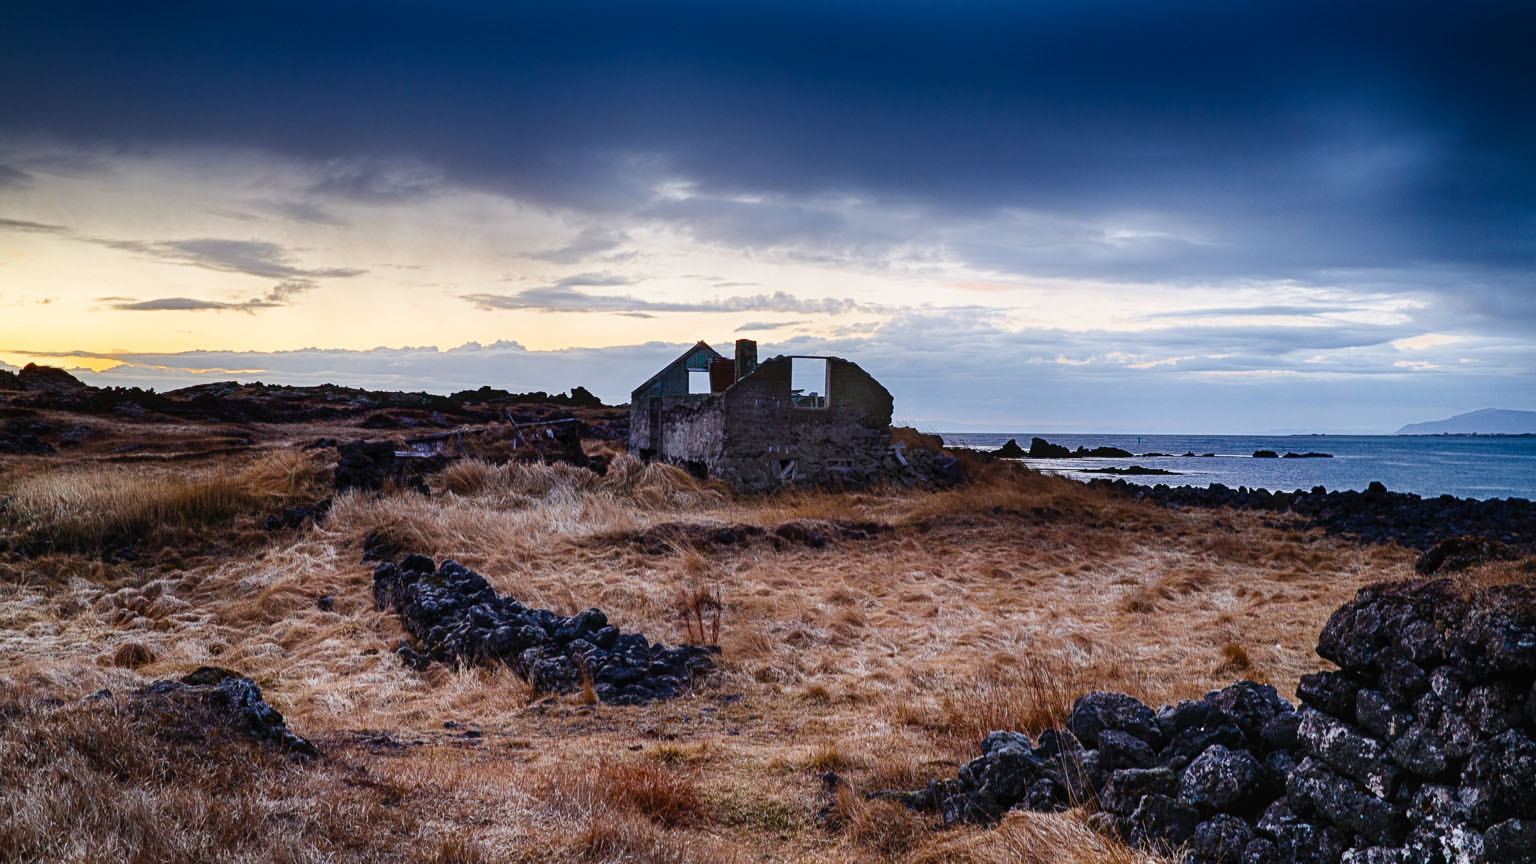 Photograph From The Past by Páll Guðjónsson on 500px